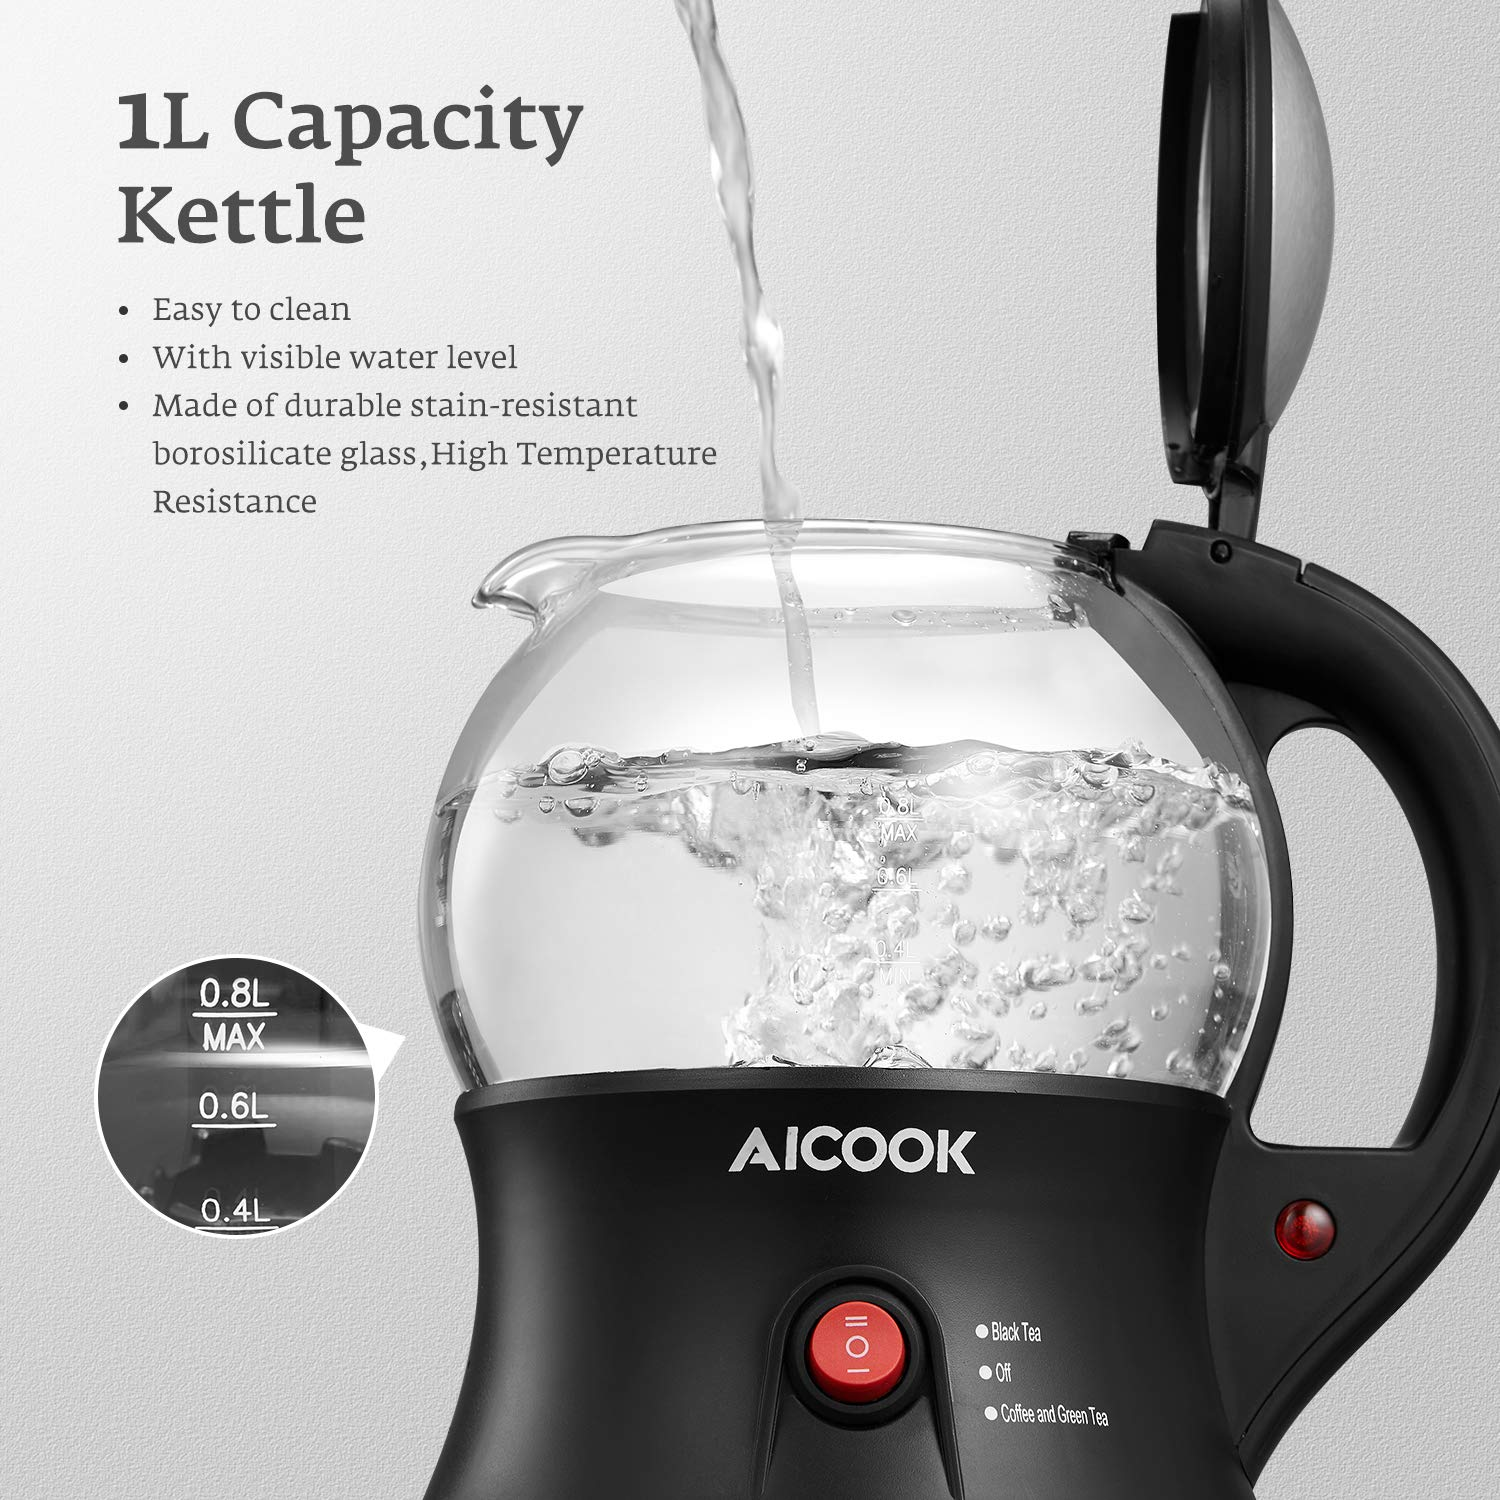 Electric Teapot, AICOOK Cordless Tea Pot Kettle with Removable Tea Infuser Set, Tea Maker For Blooming, Loose Leaf & Tea Bag and Flowering Tea, Keep Warm, Auto Shut-Off and Boil-Dry Protection, BPA Free by AICOOK (Image #4)